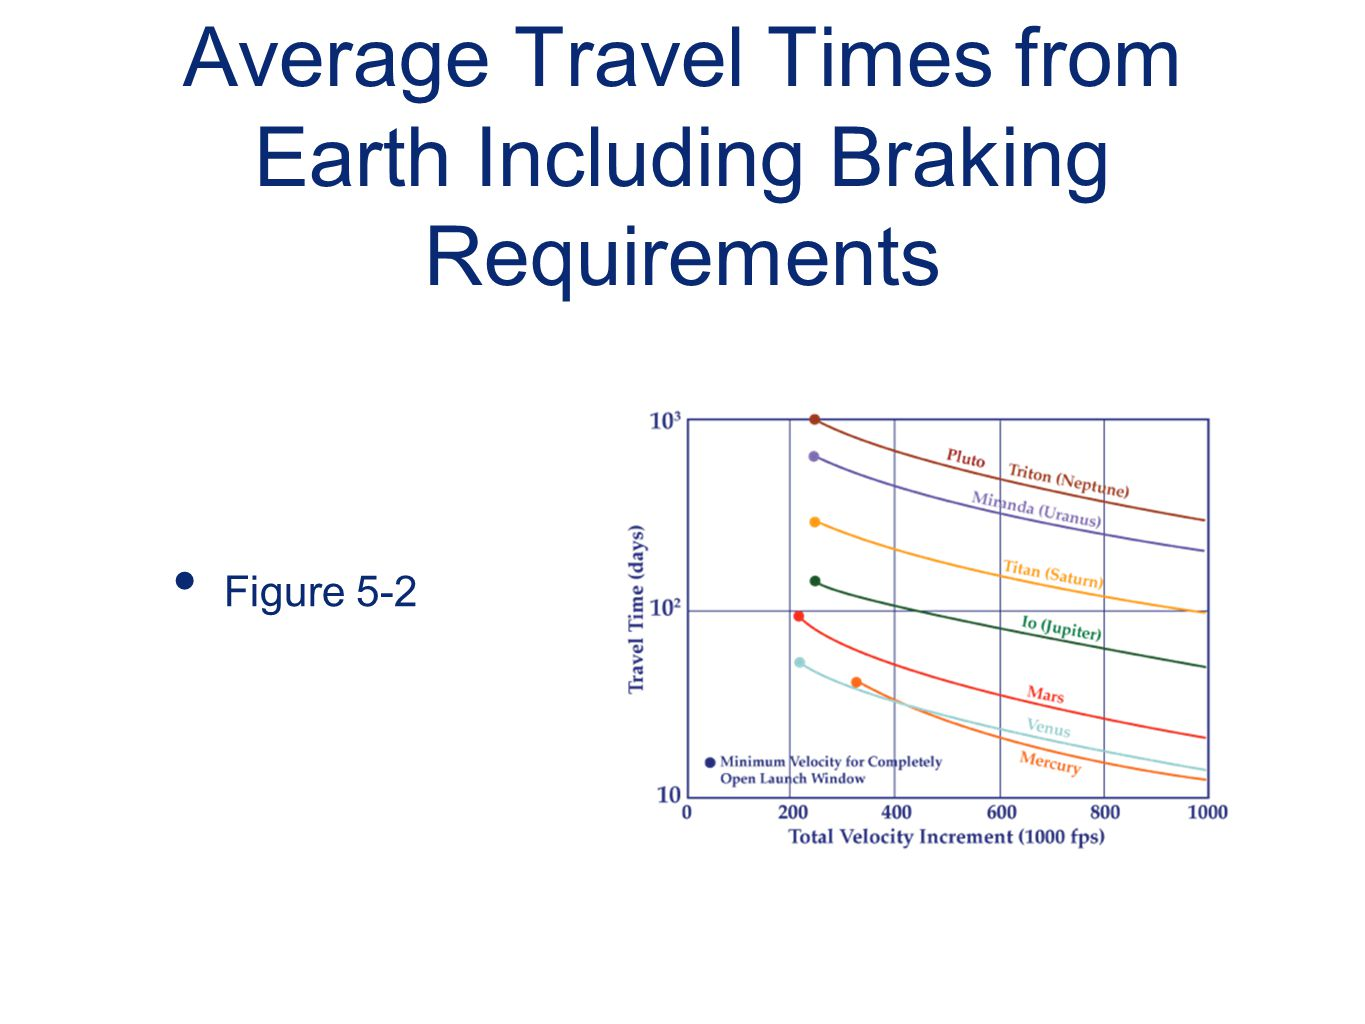 Average Travel Times from Earth Including Braking Requirements